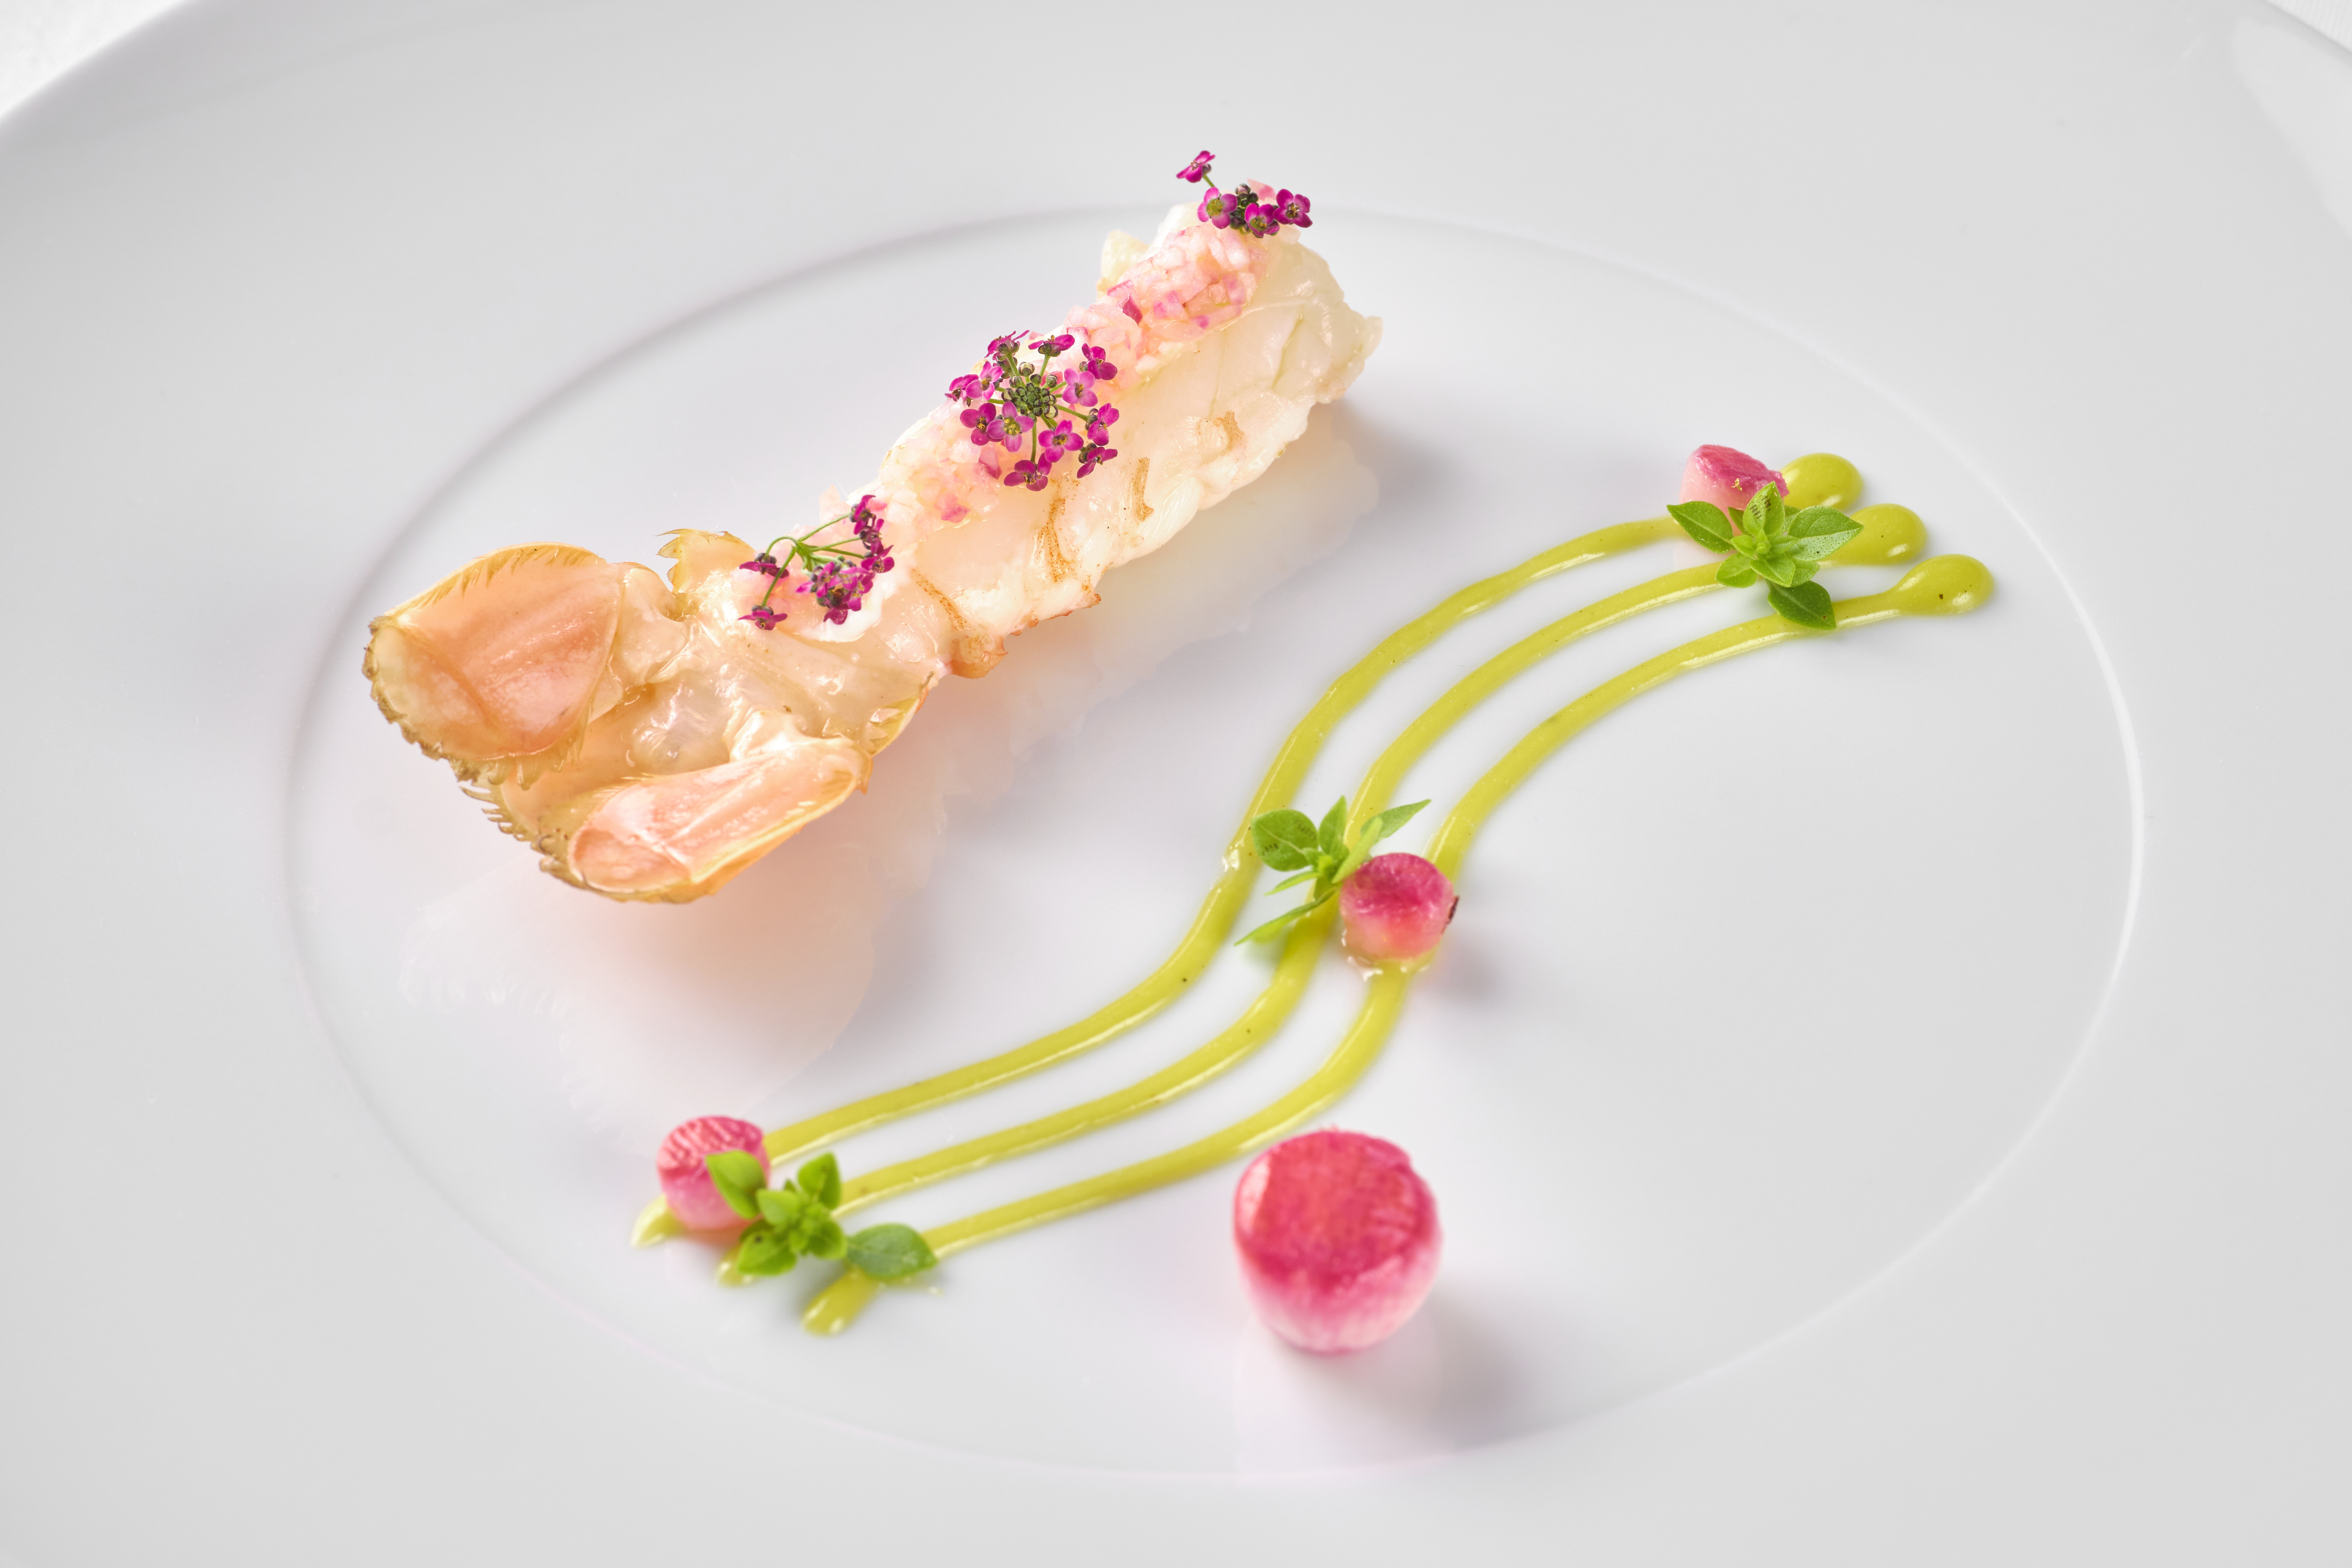 512/import-from-v1/images/Plat_Chef/2021/Langoustine_rotie_citron_confit_radis_red_meat__1.jpg